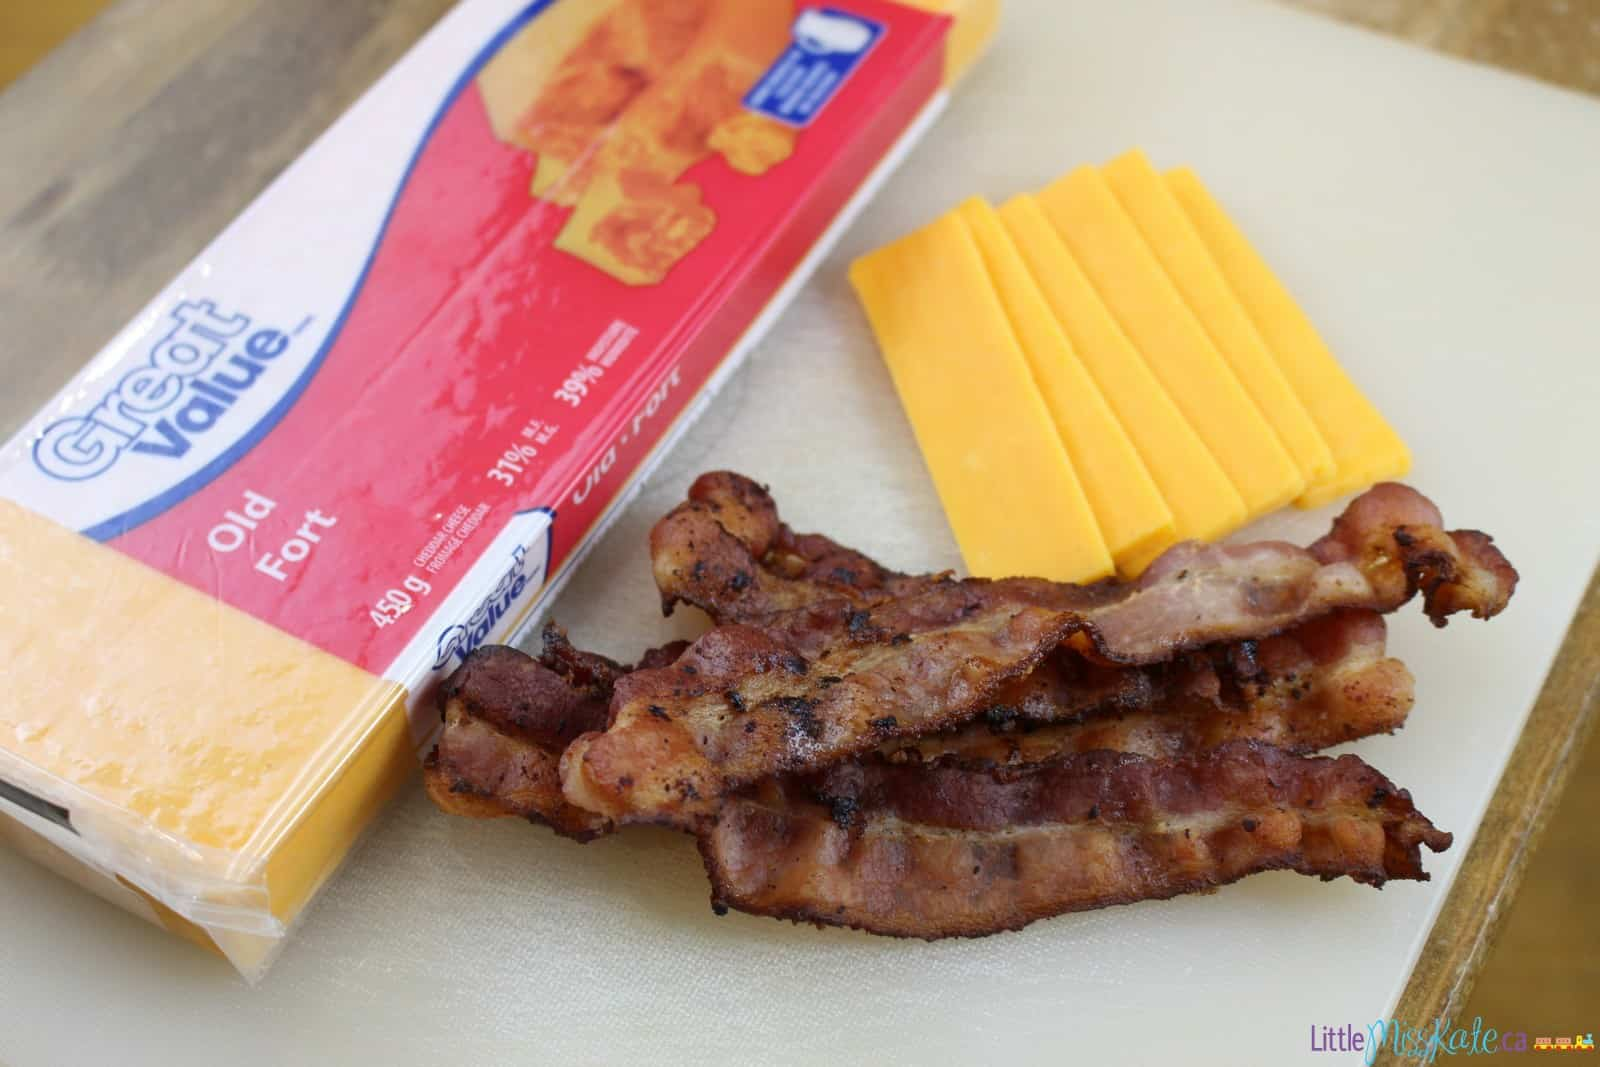 Ultimate Grilled Cheese Recipeswith brick cheese via www.littlemisskate.ca